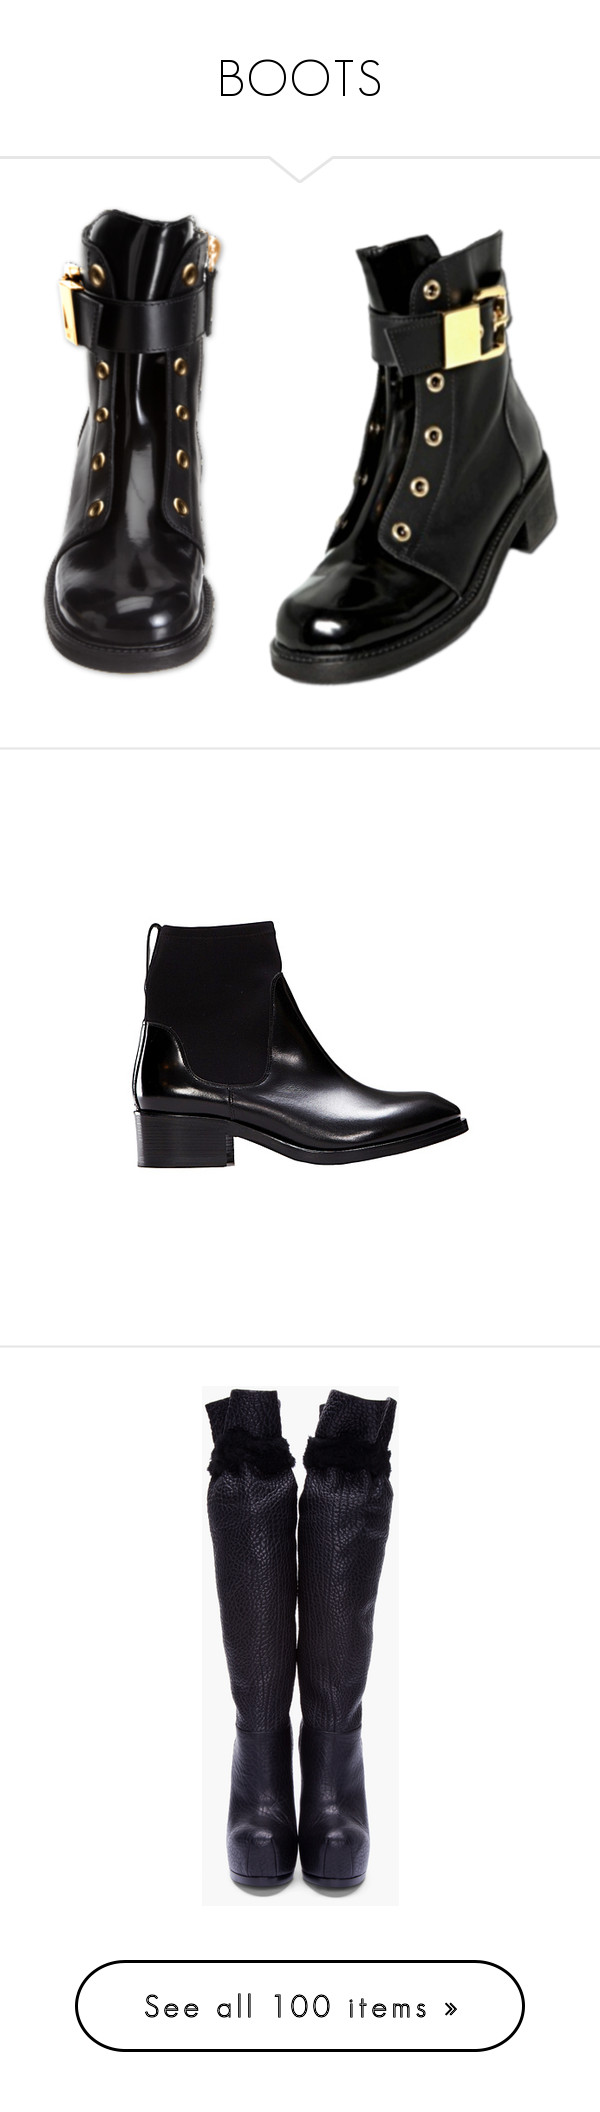 """""""BOOTS"""" by anul1 ❤ liked on Polyvore featuring shoes, boots, ankle booties, high heel platform boots, platform boots, knee high boots, black knee high heel boots, leather sole boots, footwear and sapatos"""